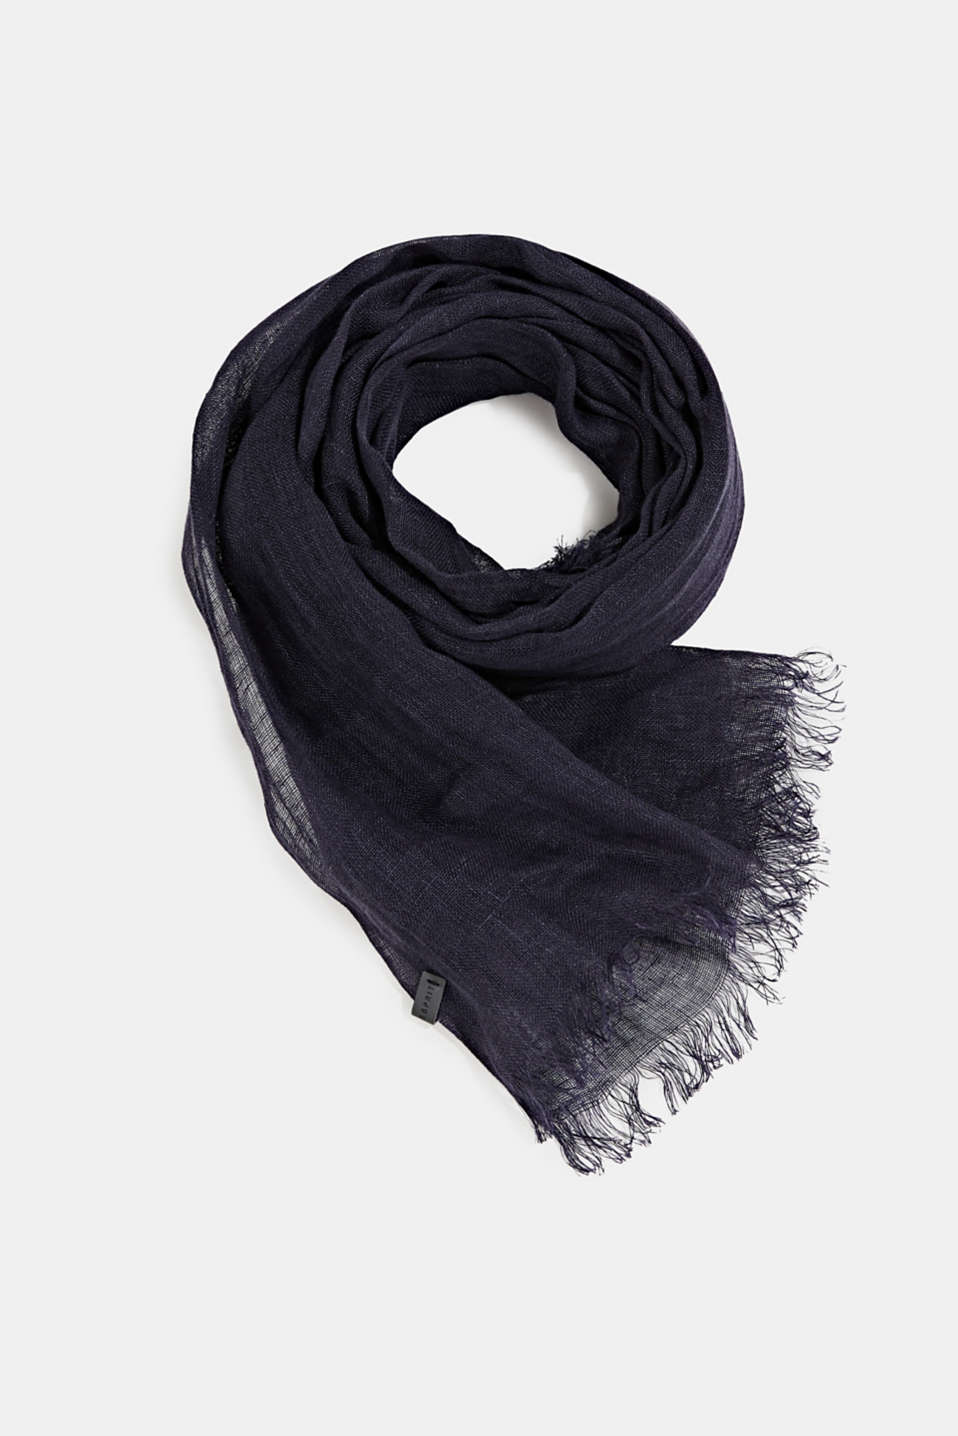 Esprit - Woven scarf made of 100% linen